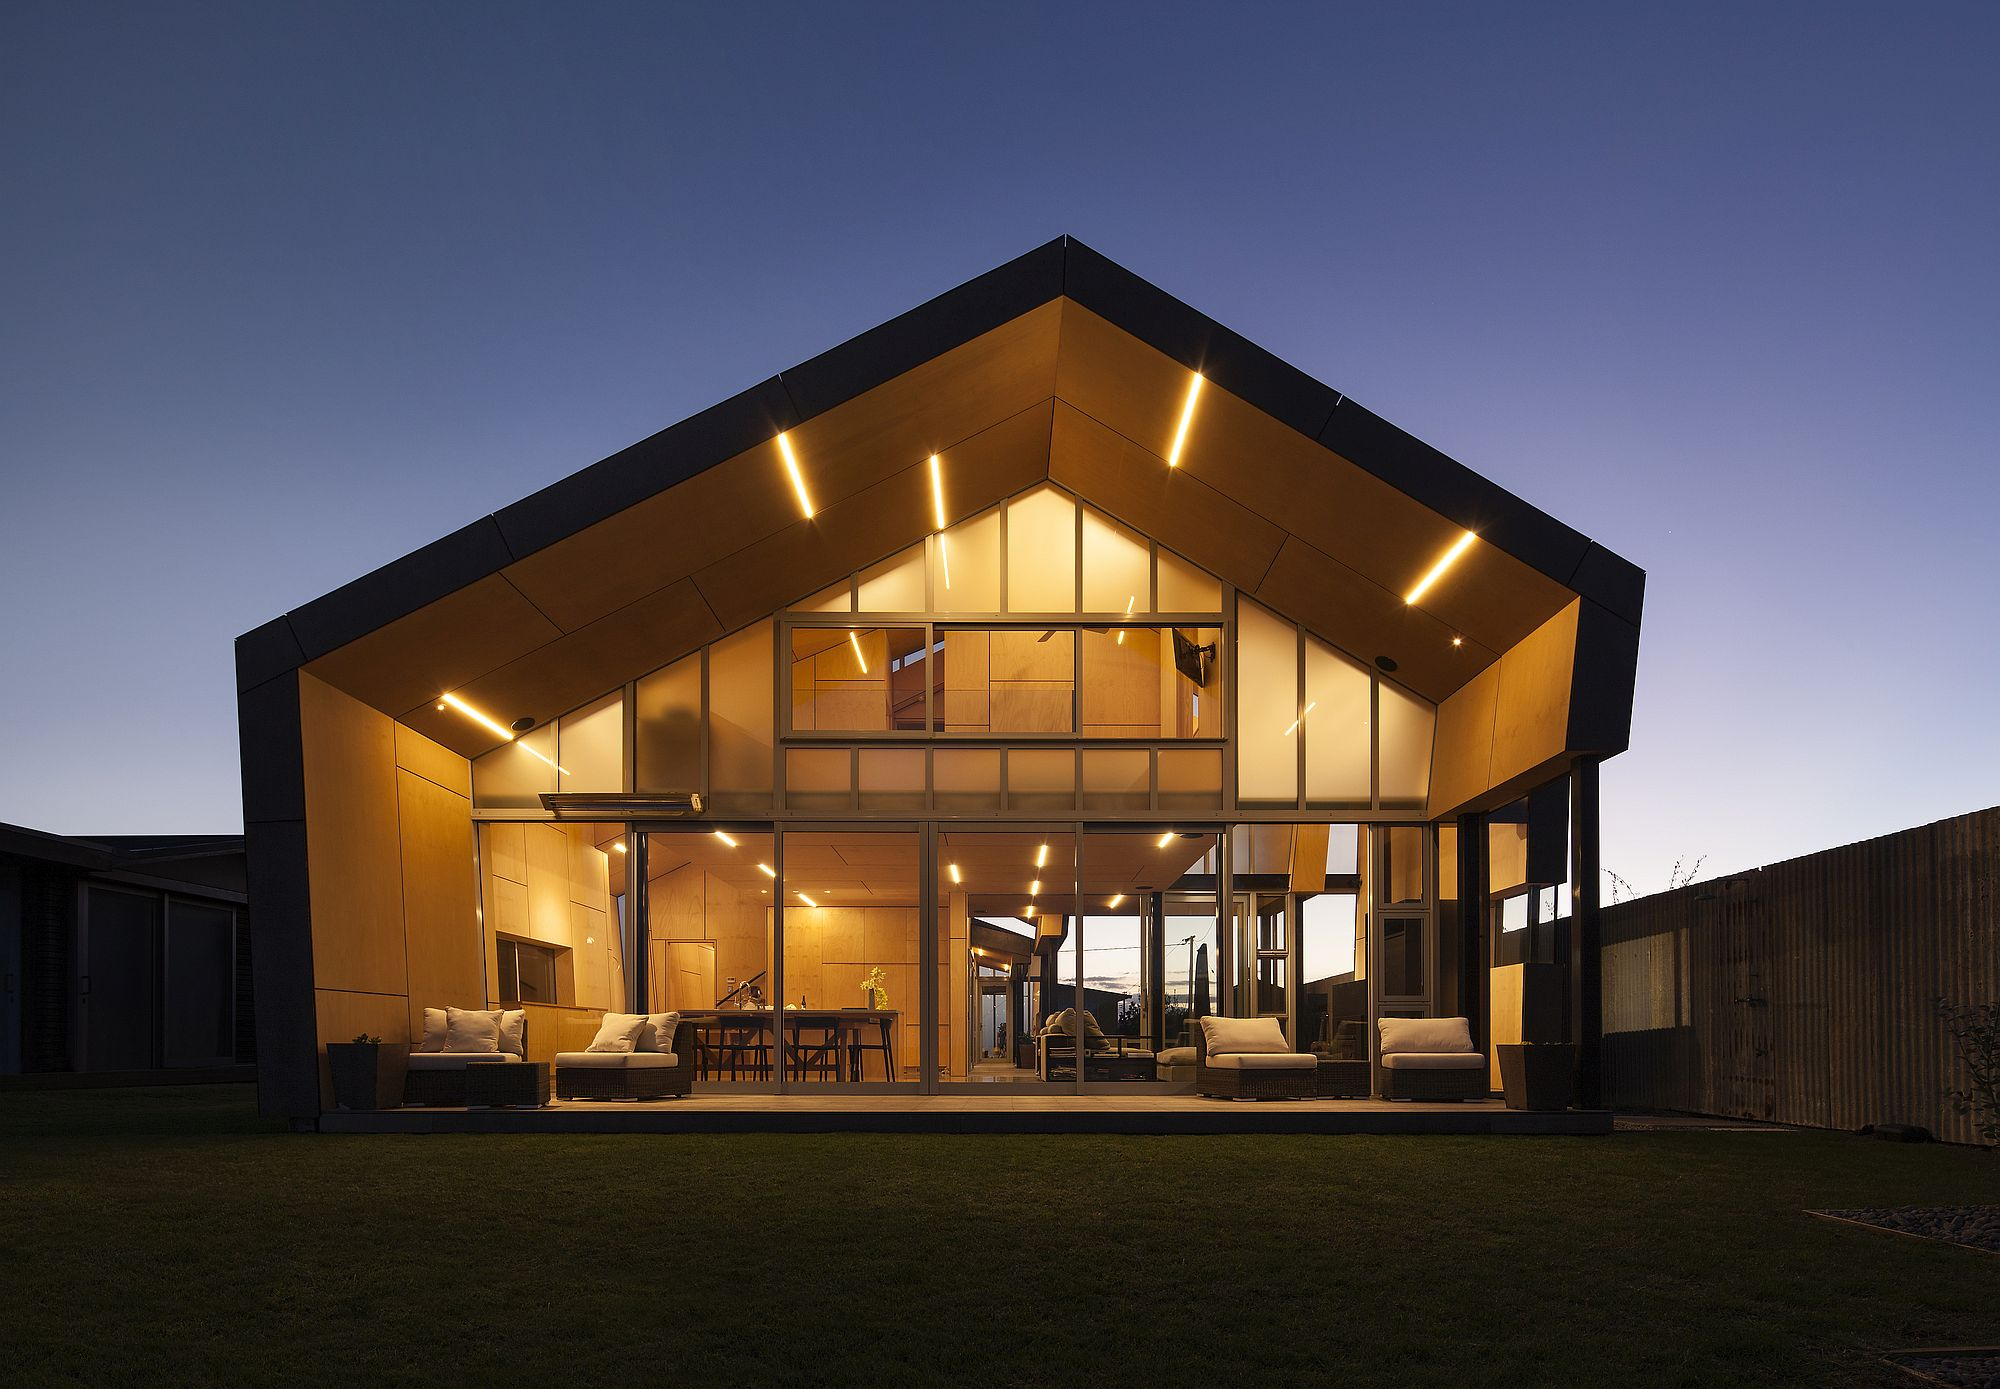 Open rear facade of the house clad in glass opens it up towards the ocean